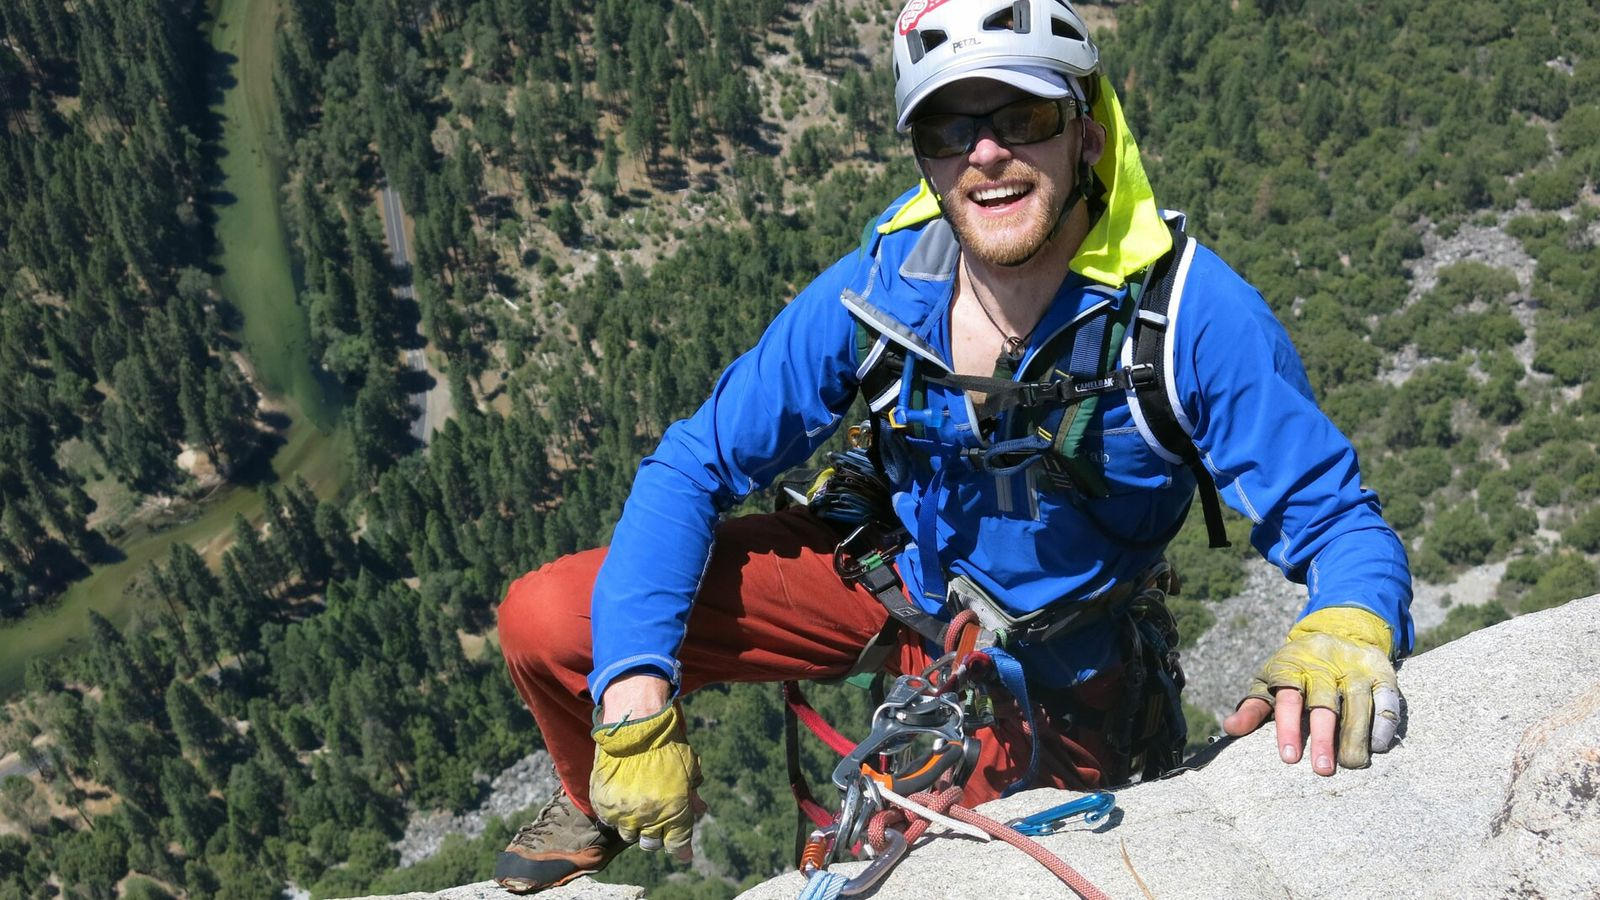 Having trained as an alpine guide, Steve Bate's feats include becoming the first person with visual impairment ...